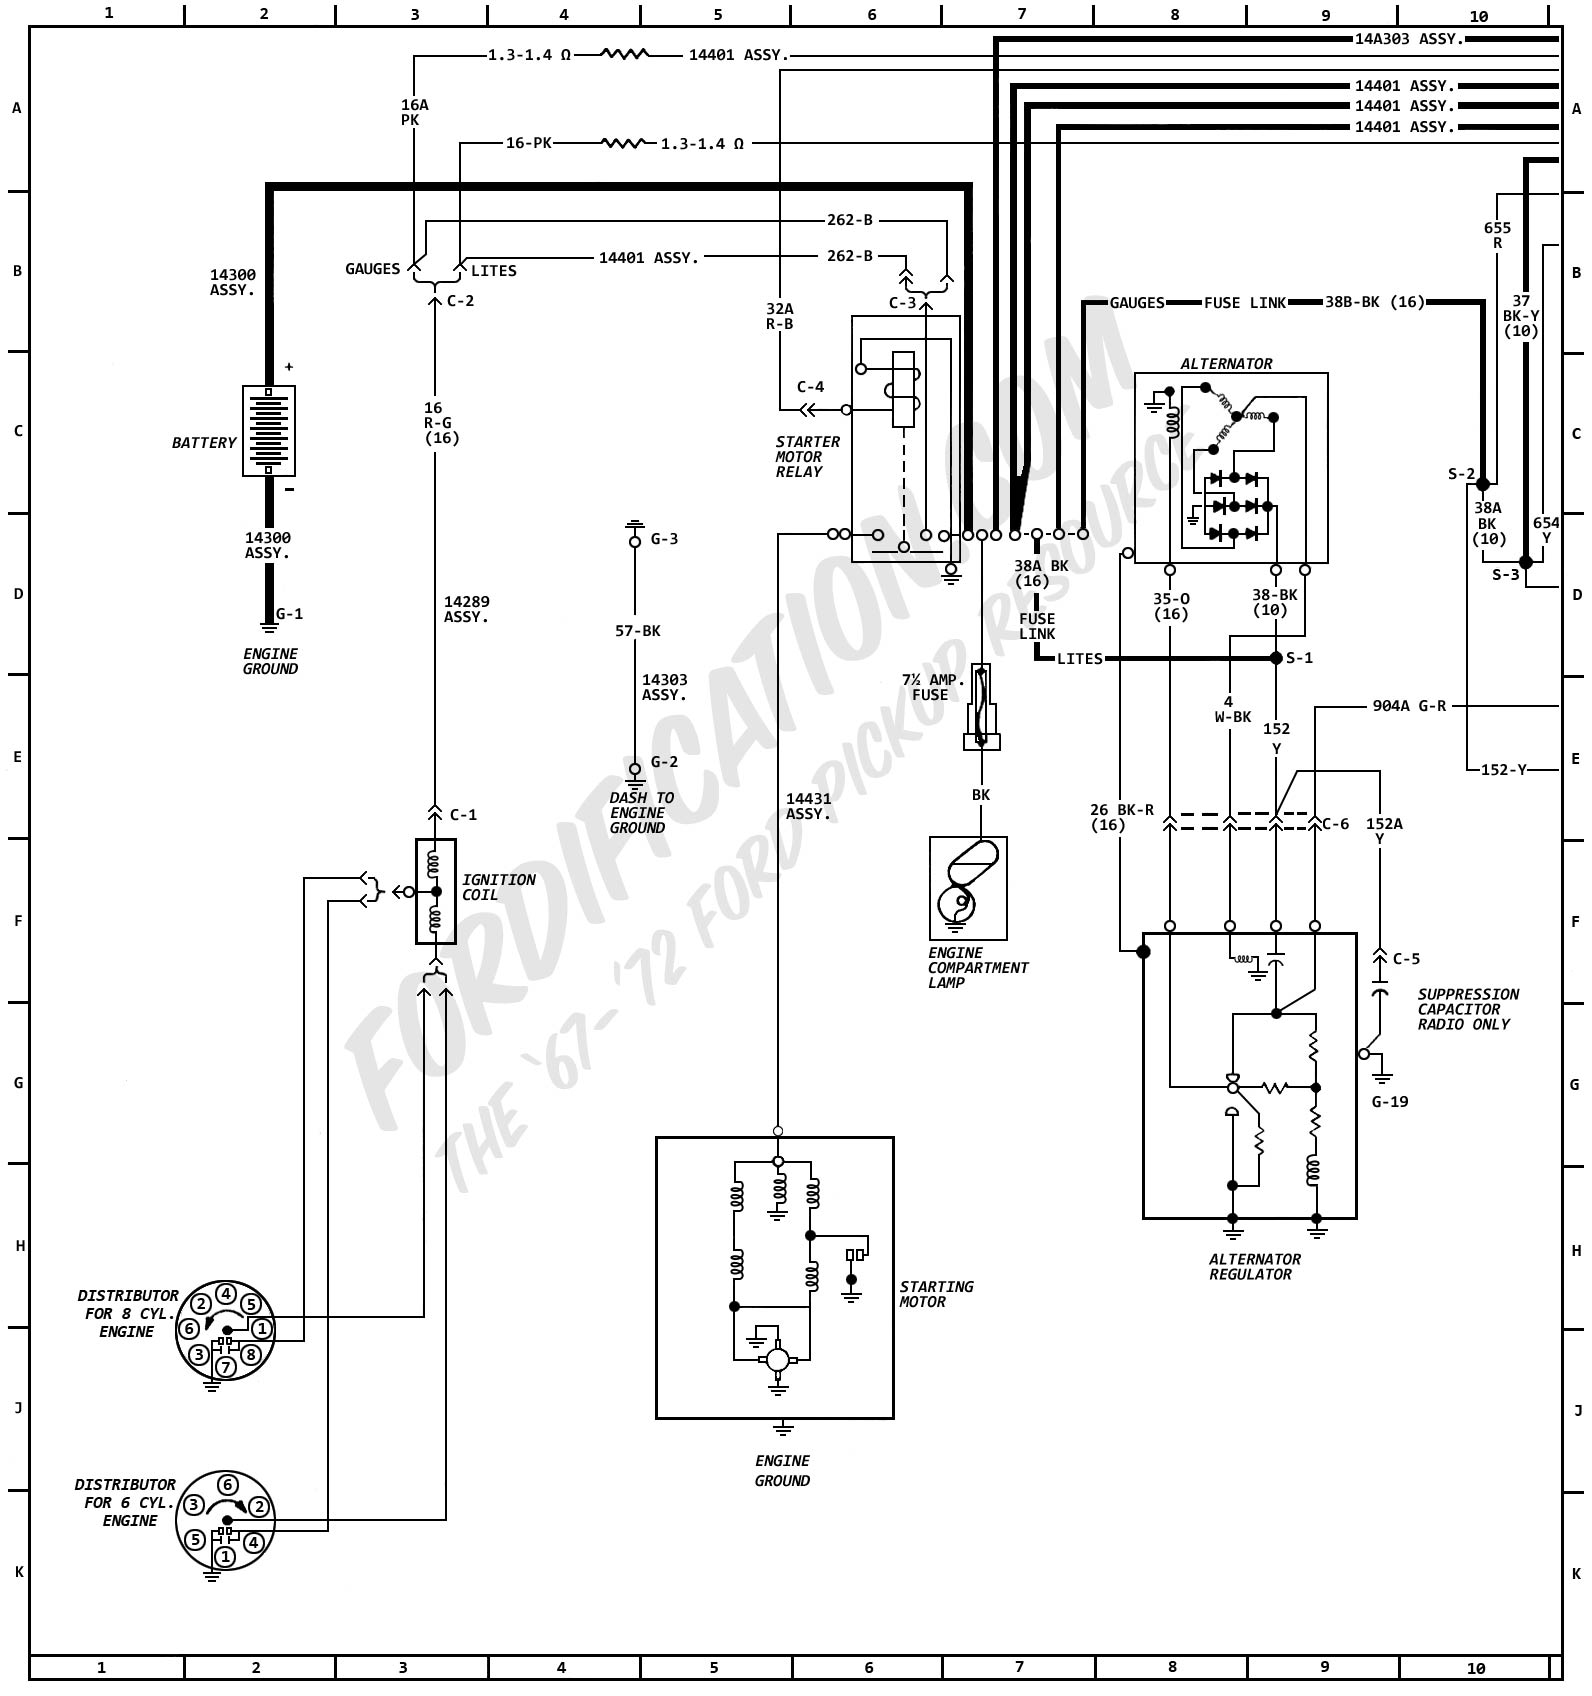 1972 f250 wiring diagram schematics wiring diagrams u2022 rh seniorlivinguniversity co 1985 ford f250 diesel wiring diagram 2005 ford f250 diesel wiring diagram